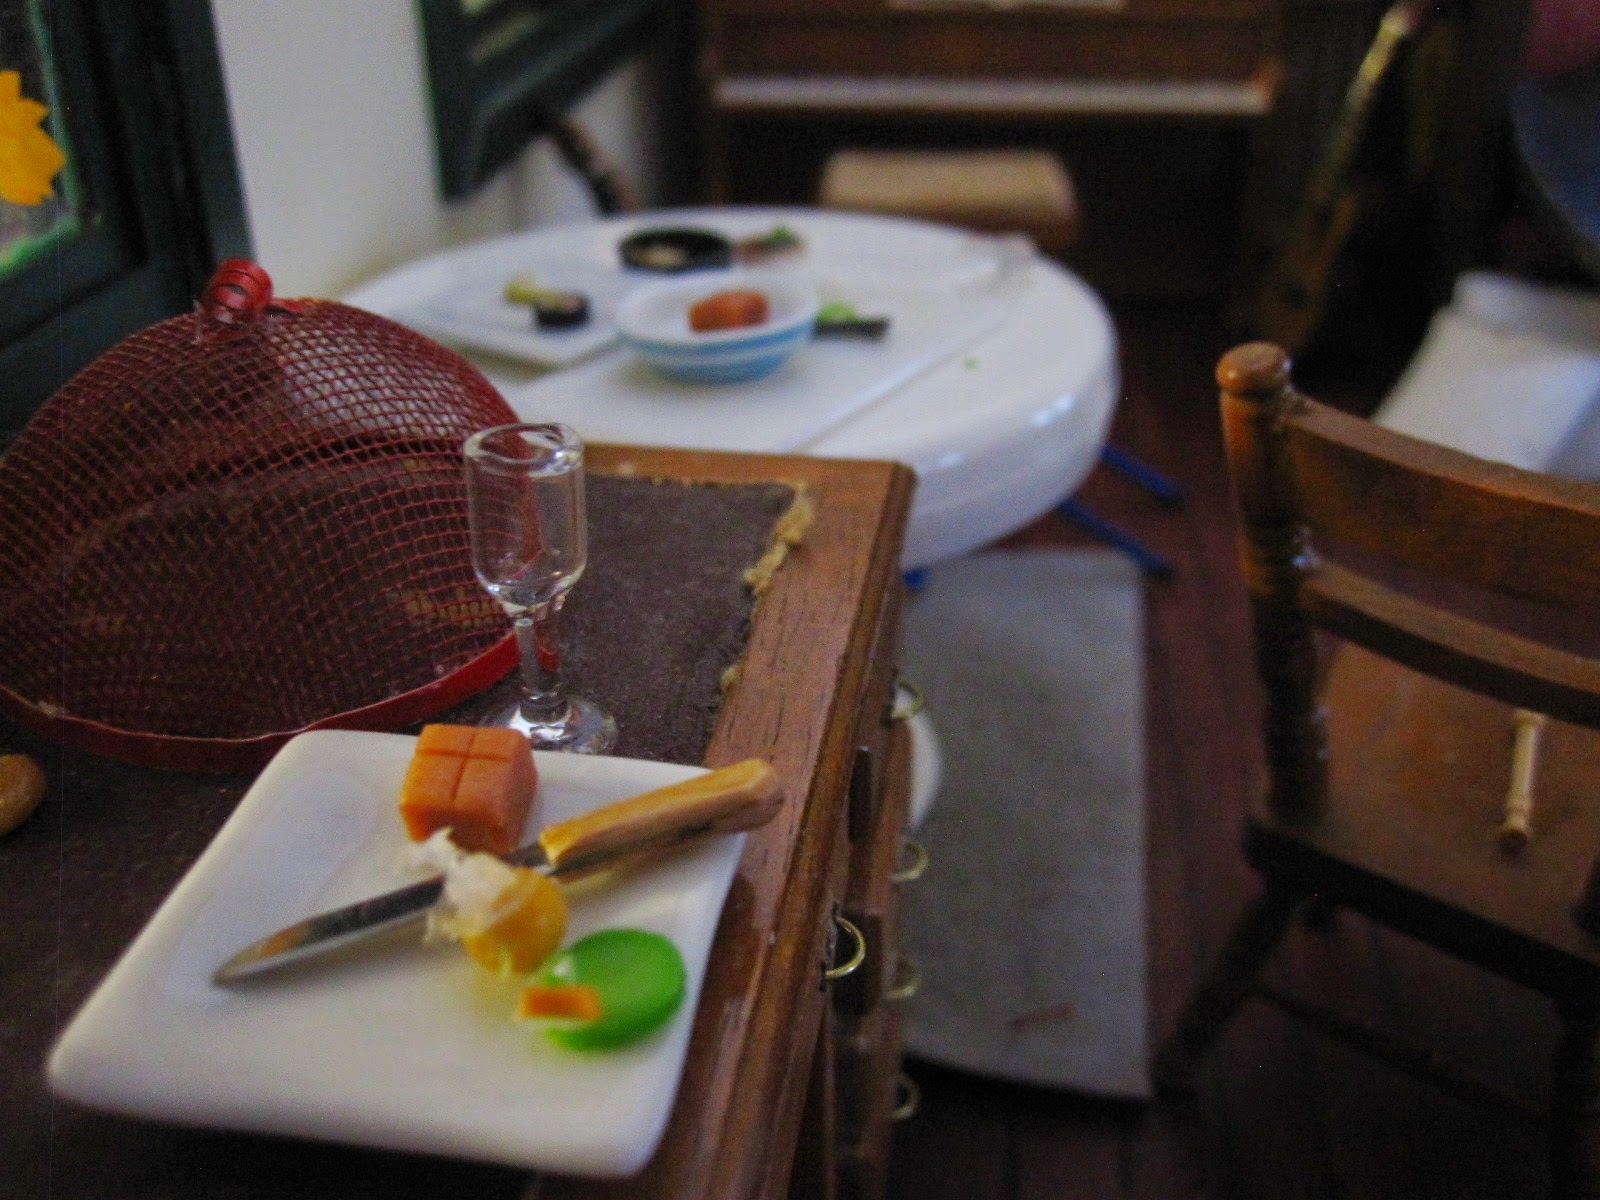 Modern dolls' house miniature post-party scene with empty serving platters and plates on tables.